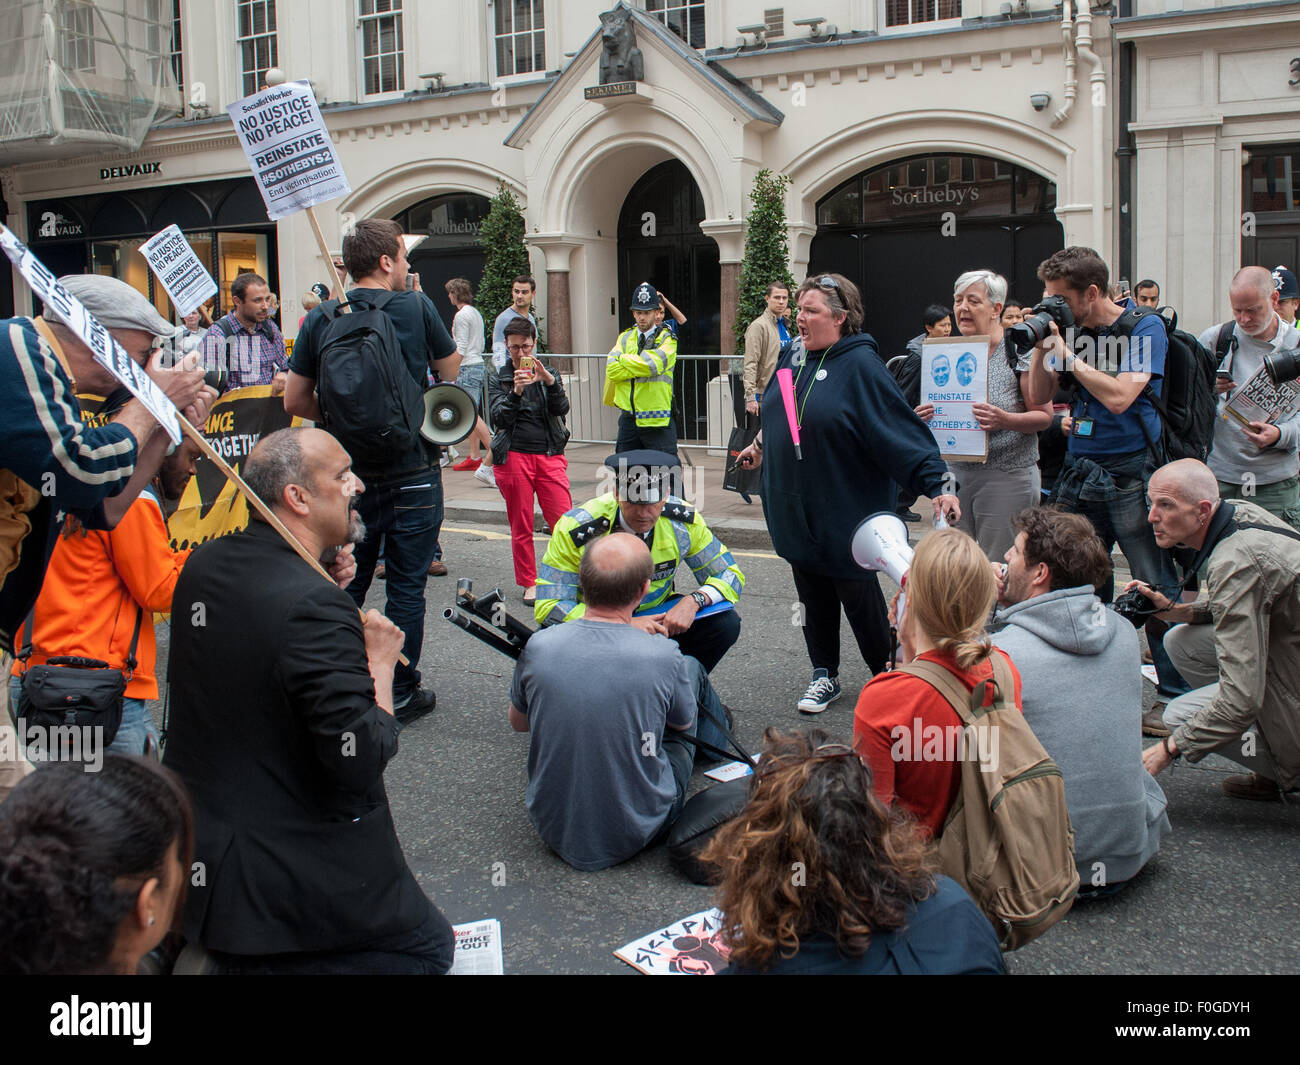 London, UK. 15 August, 2015. Activists gathered outside Sotheby's in London's New Bond Street to protest - Stock Image